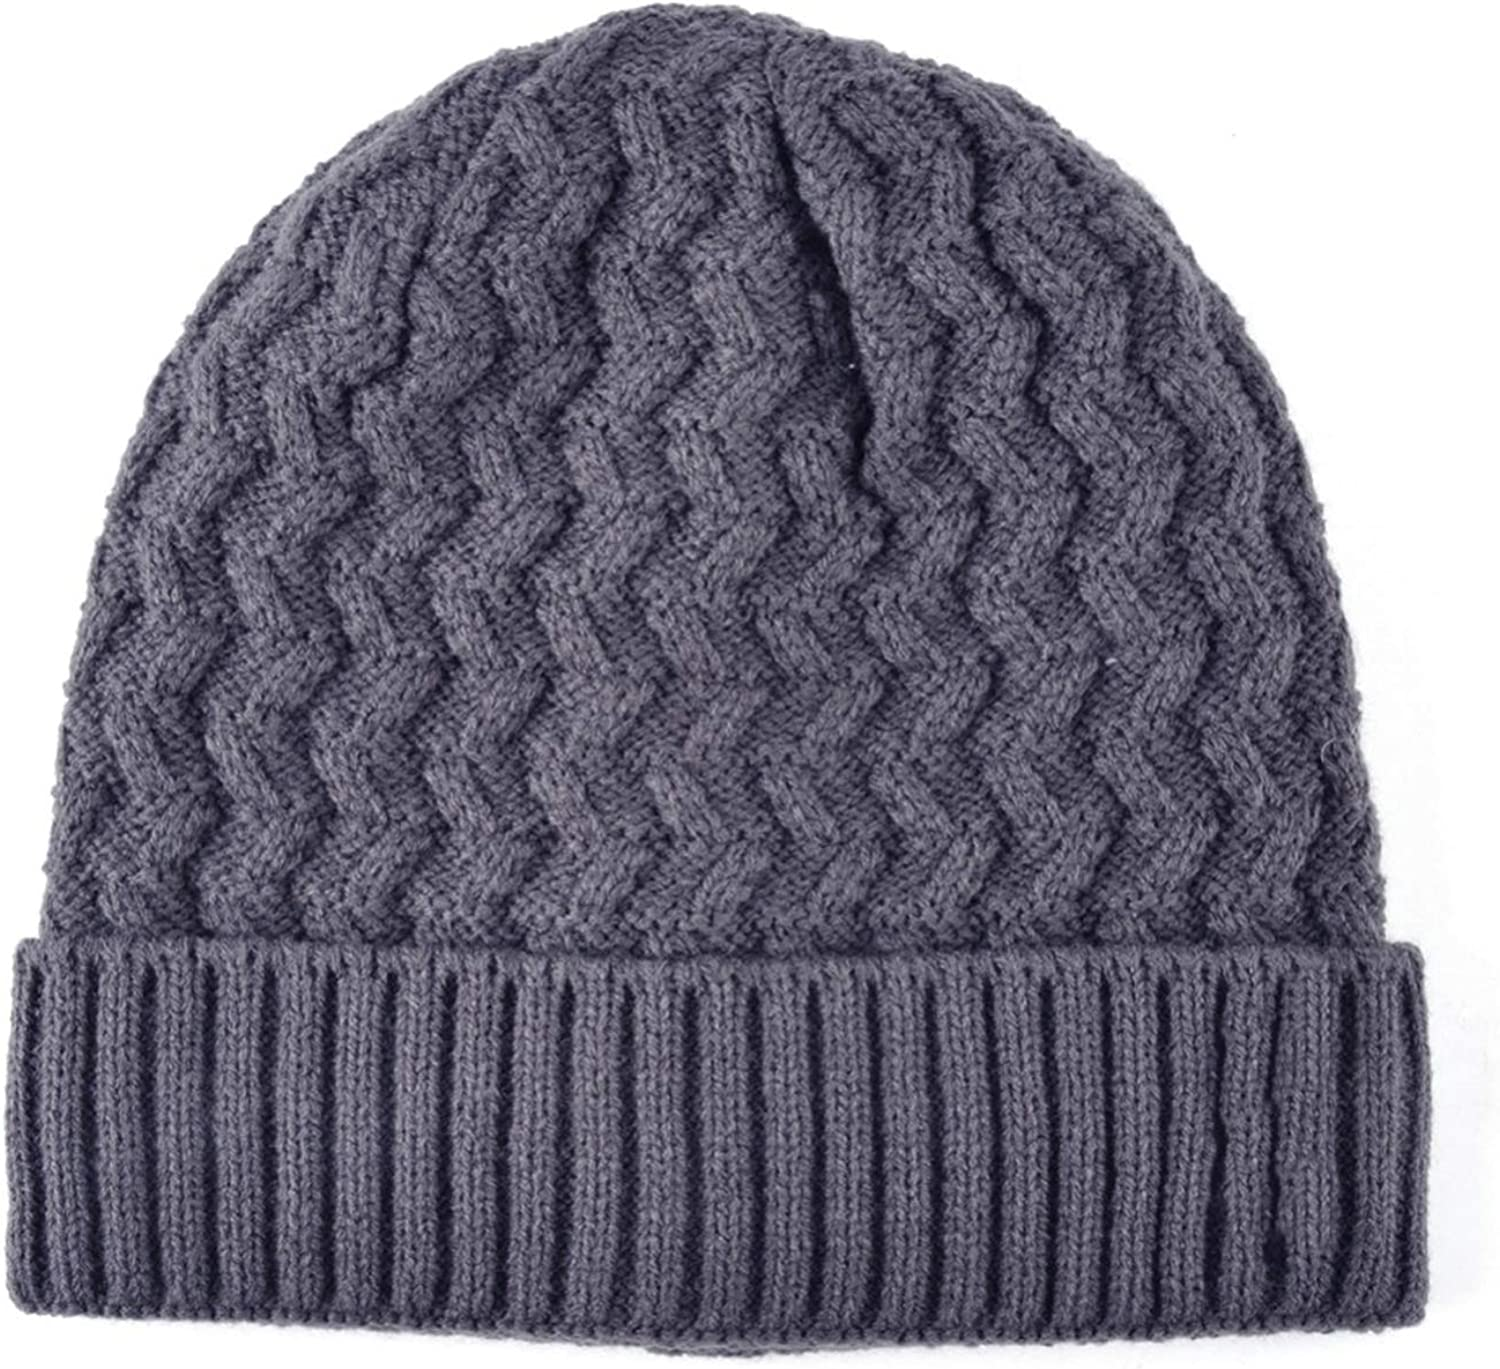 Knitted Hat Men Skullies Beanie Knitting Wool Hats for Boys Beanies Bonnet Warm Touca Masculina Inverno